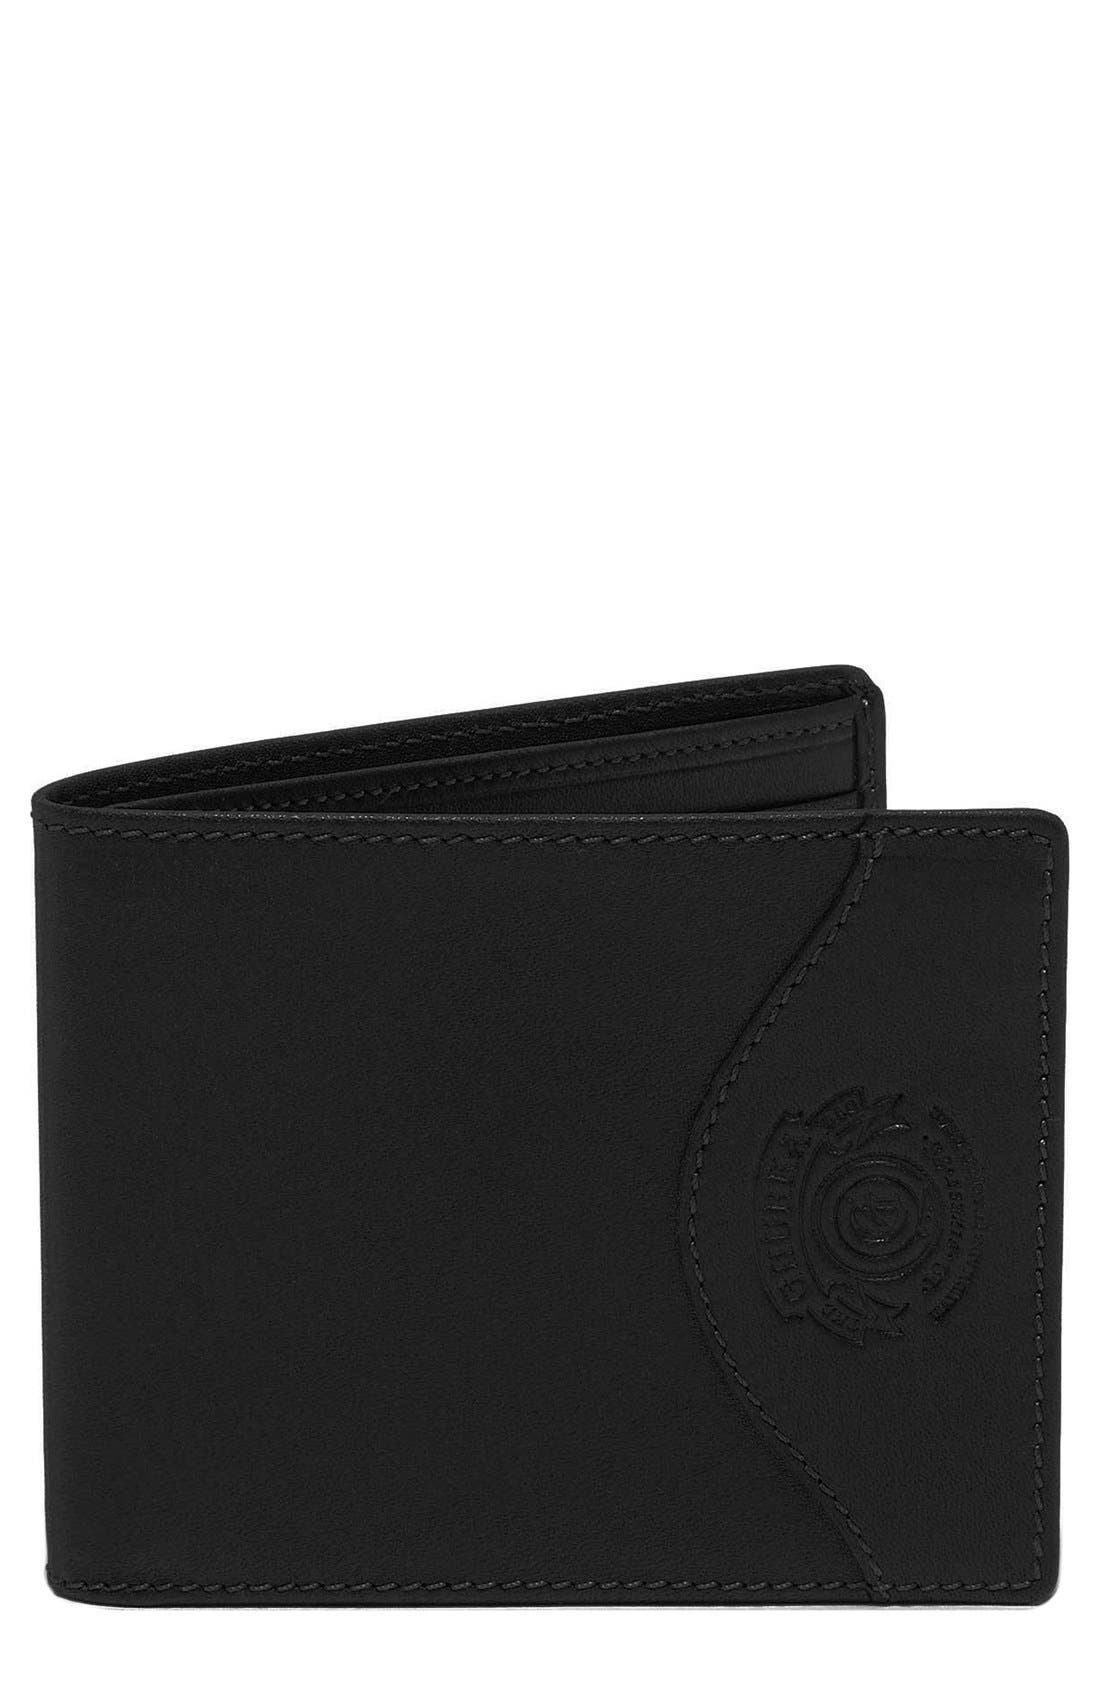 Main Image - Ghurka Classic Leather Wallet